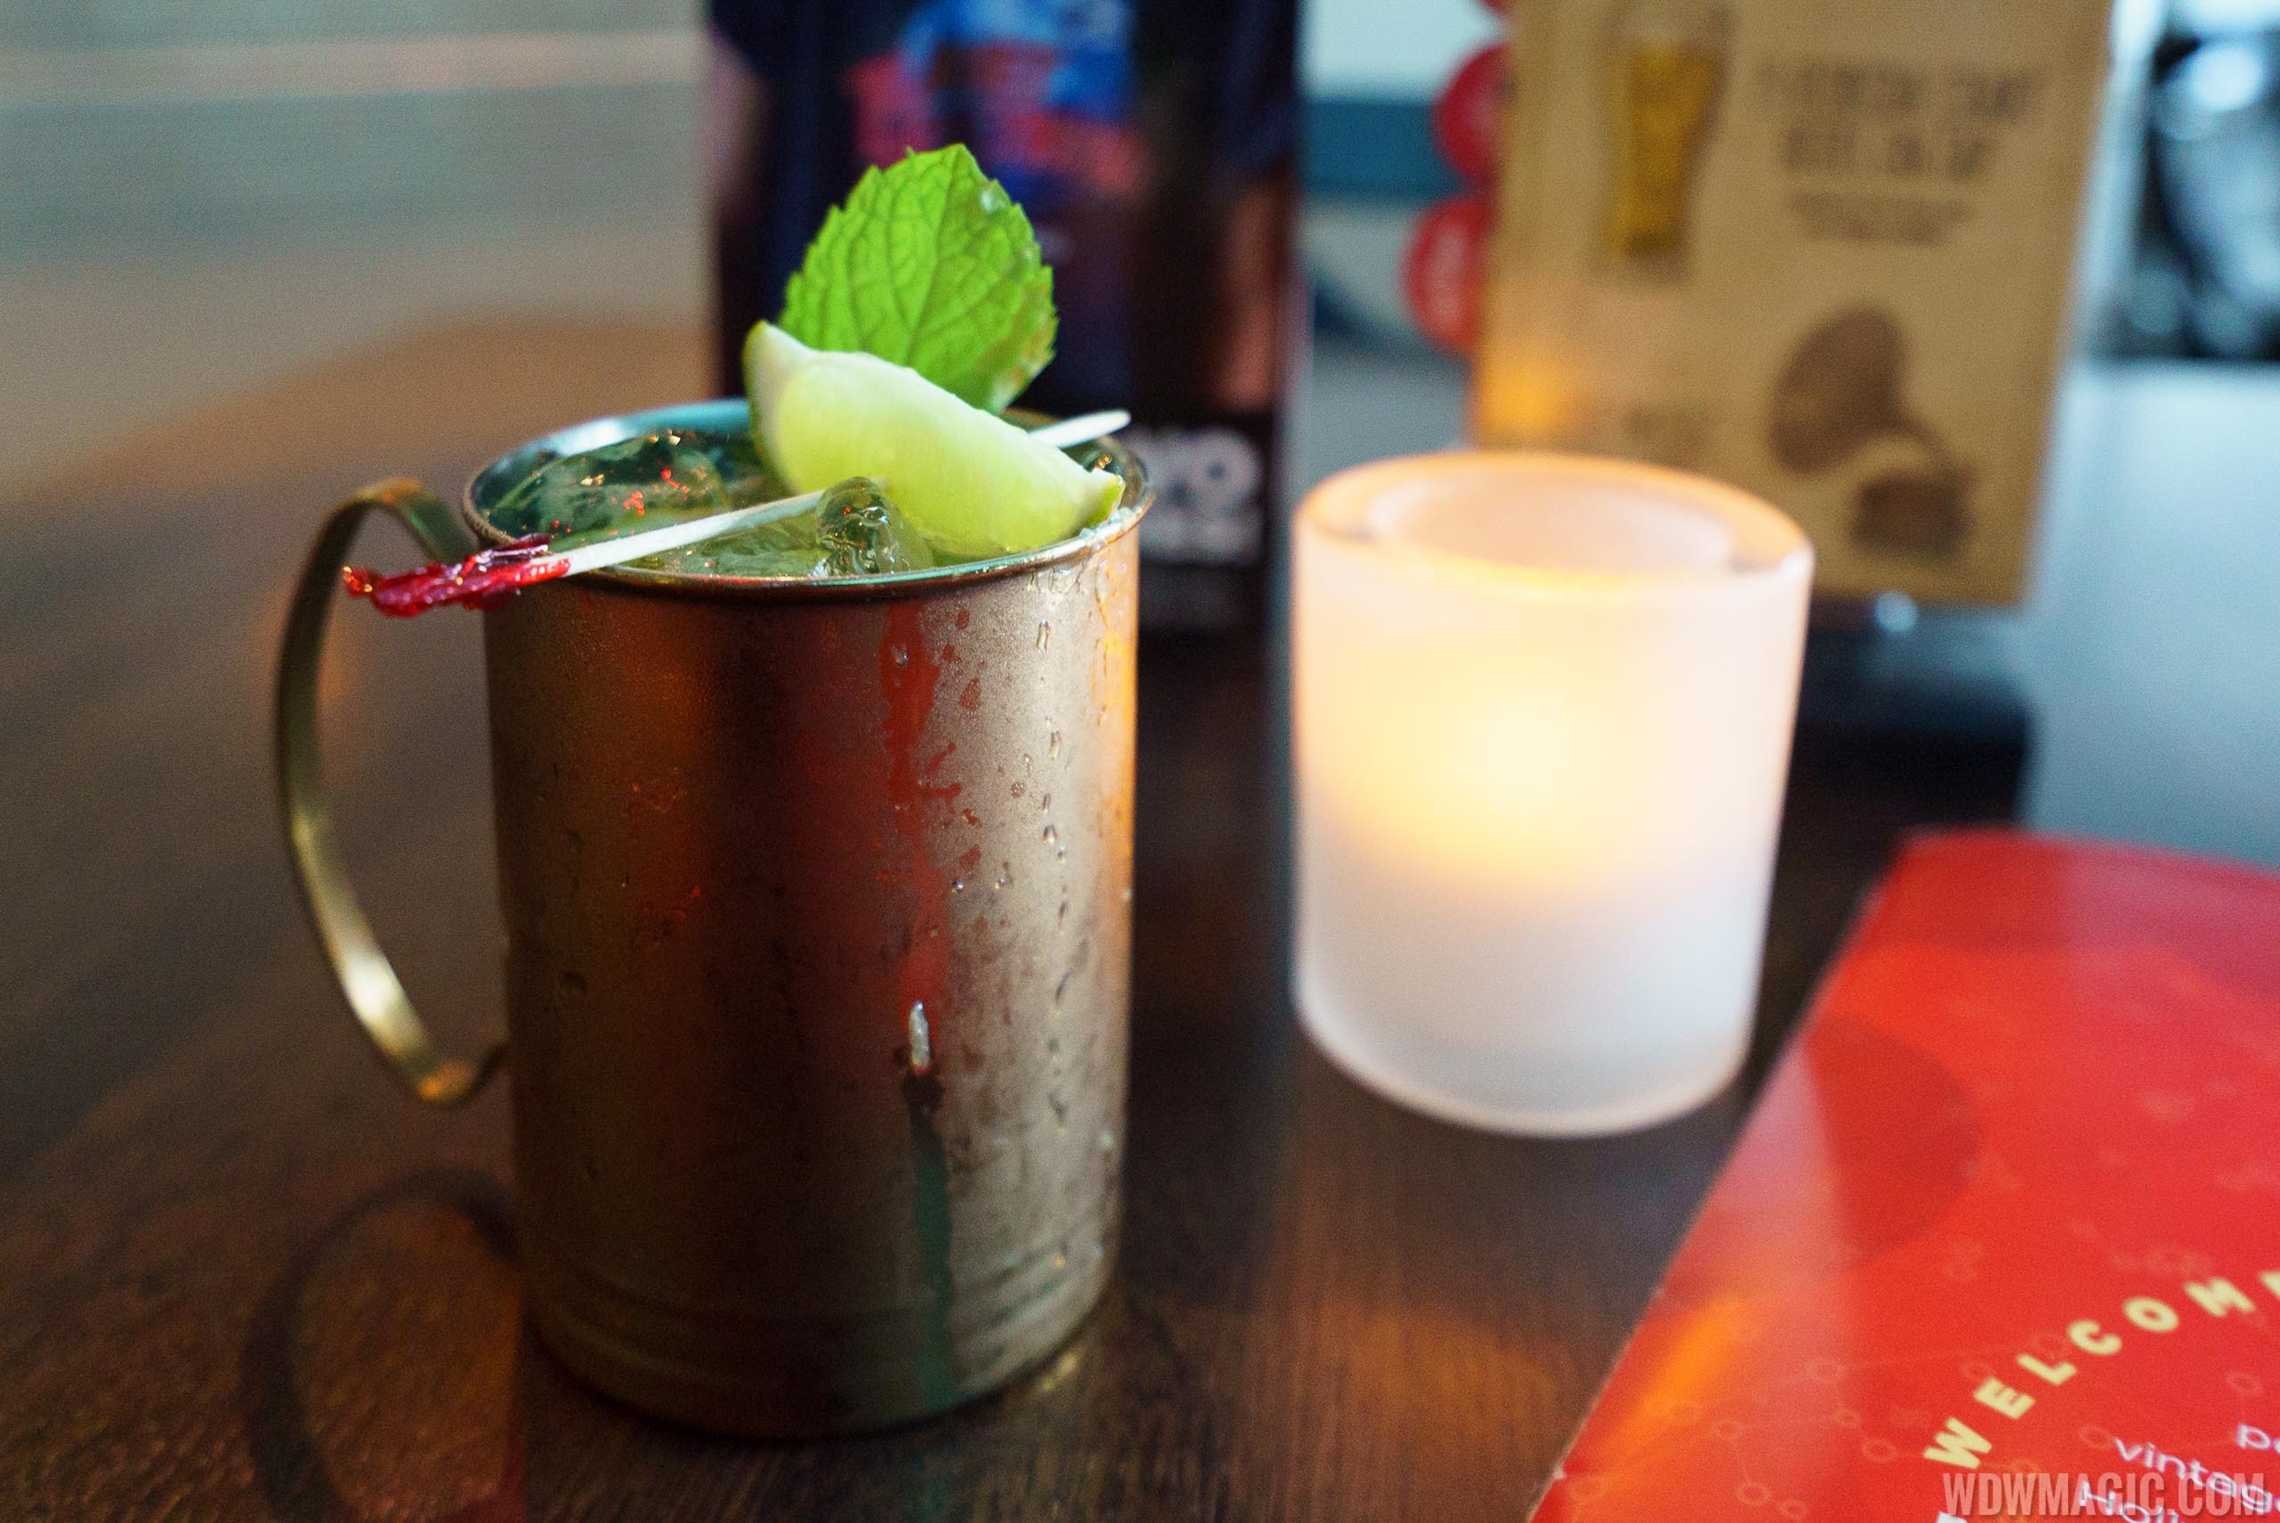 Mercury Mule - $12 New Amsterdam Vodka, Limoncino Bottega and Real ginger infused syrup